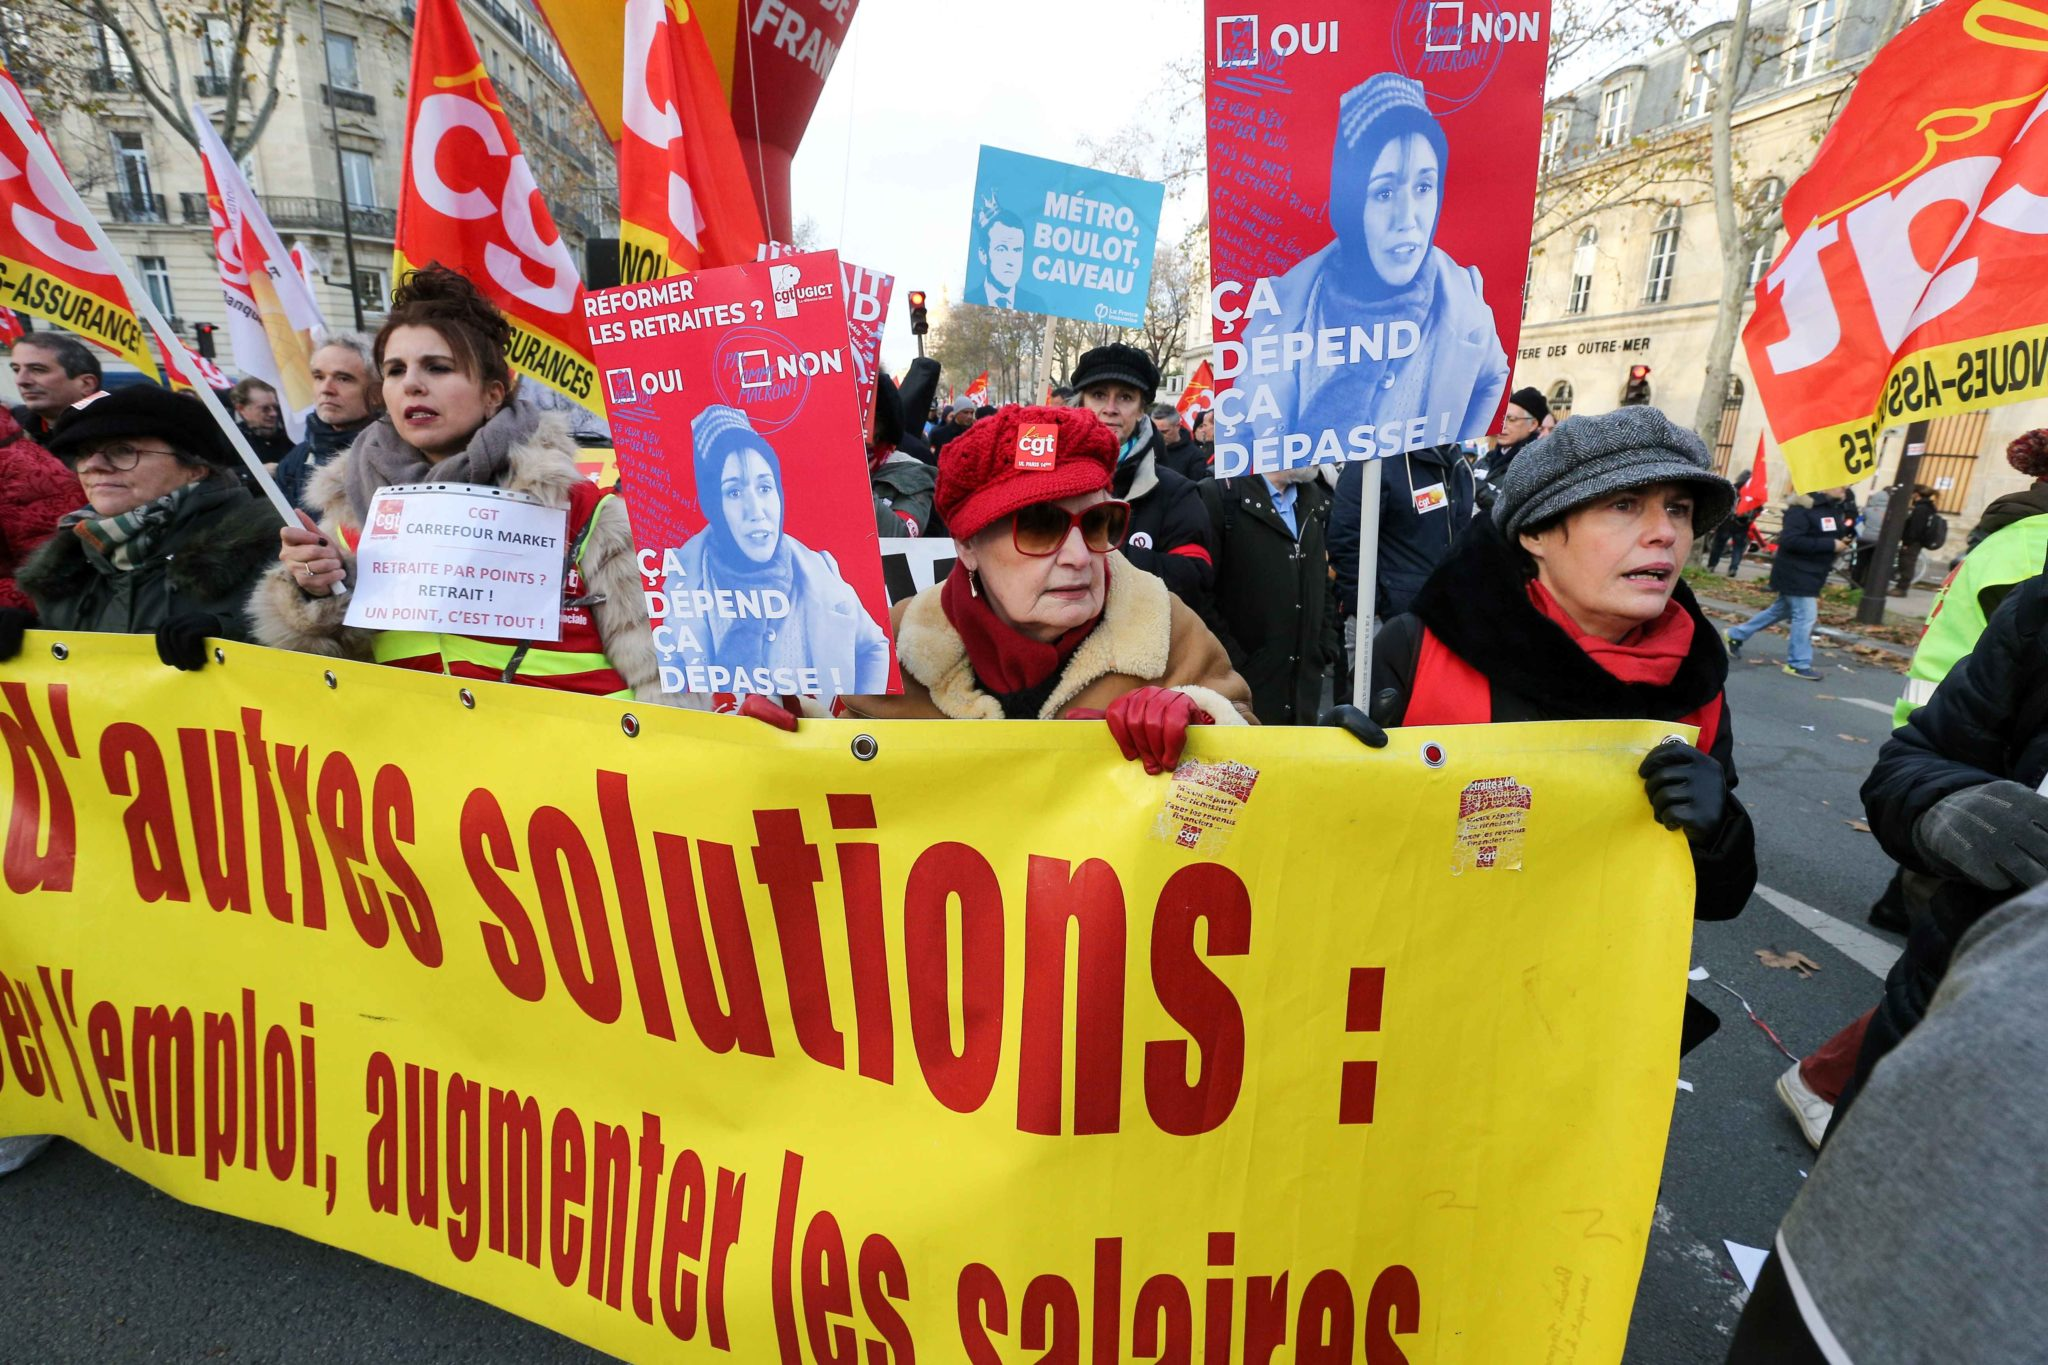 Demonstrators march in Paris, on December 10, 2019 on a sixth day of a strike of public transport operators SNCF and RATP employees over French government's plan to overhaul the country's retirement system. Unions have vowed to keep up the fight over the r